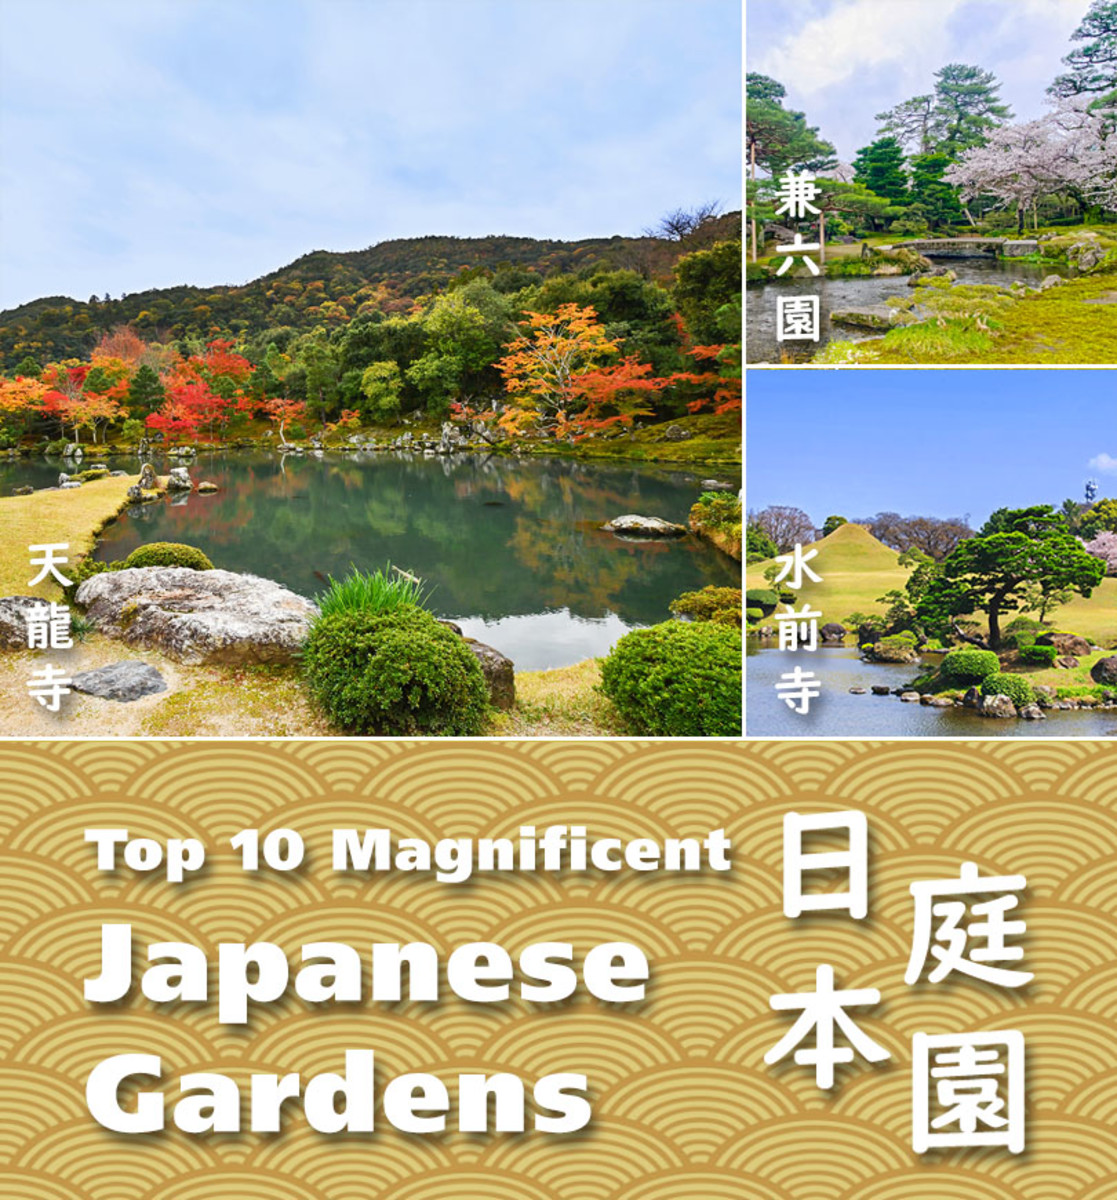 The 10 Most Beautiful Japanese Gardens in Japan